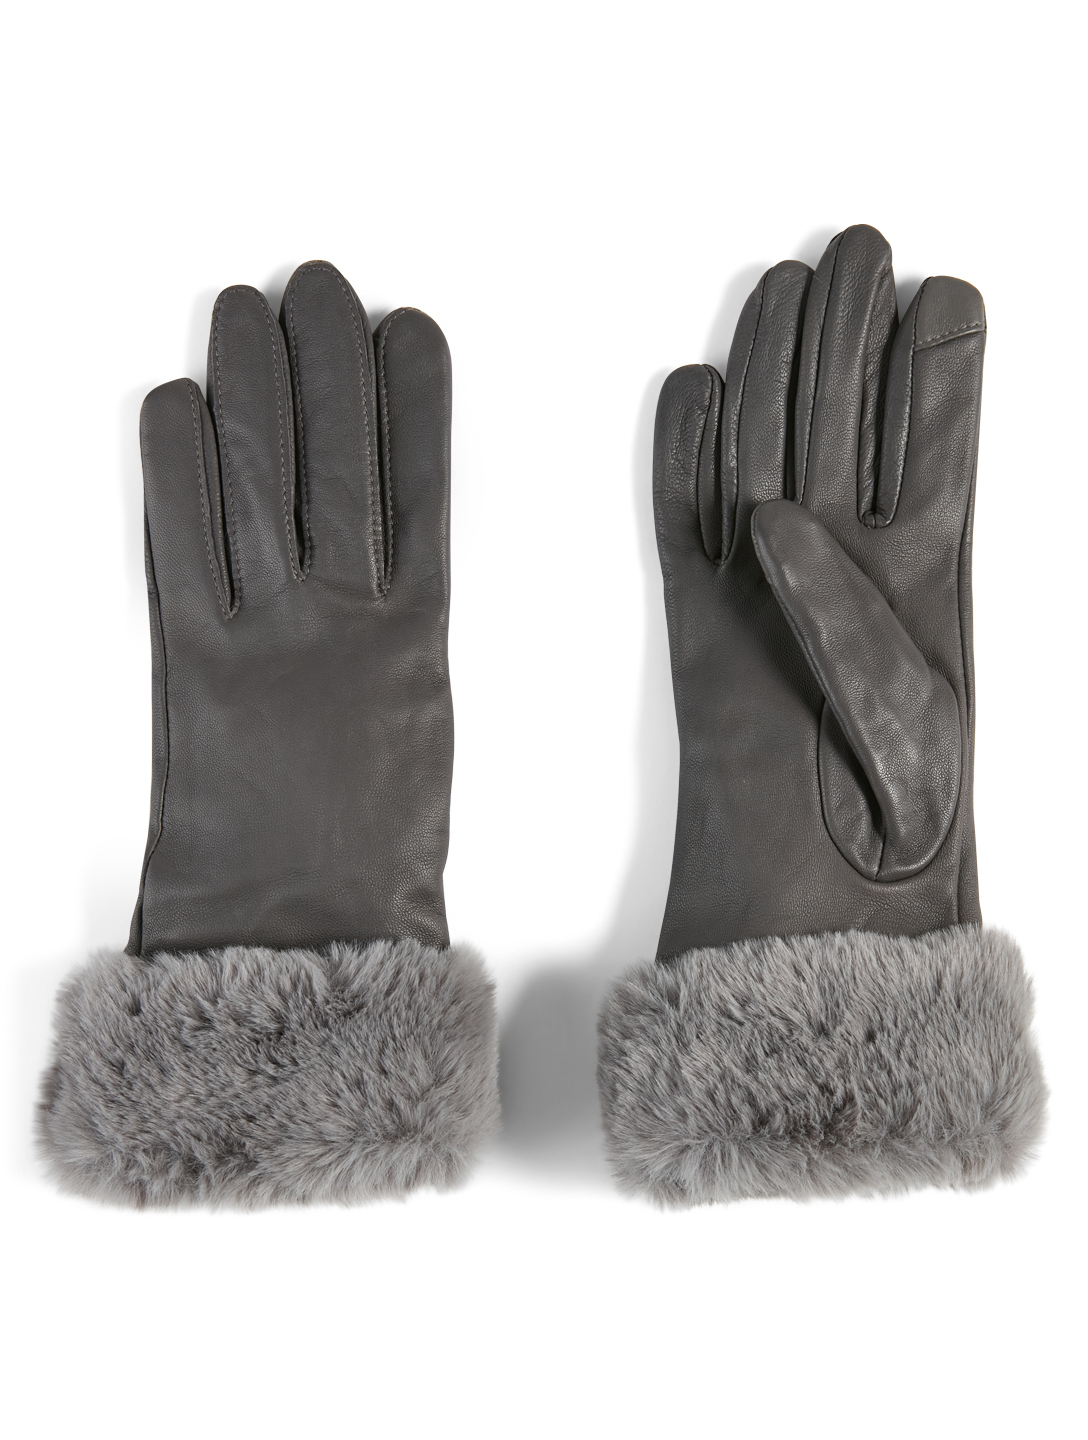 FOWNES BROTHERS & CO Leather Tech Gloves With Faux Fur Cuff Women's Grey